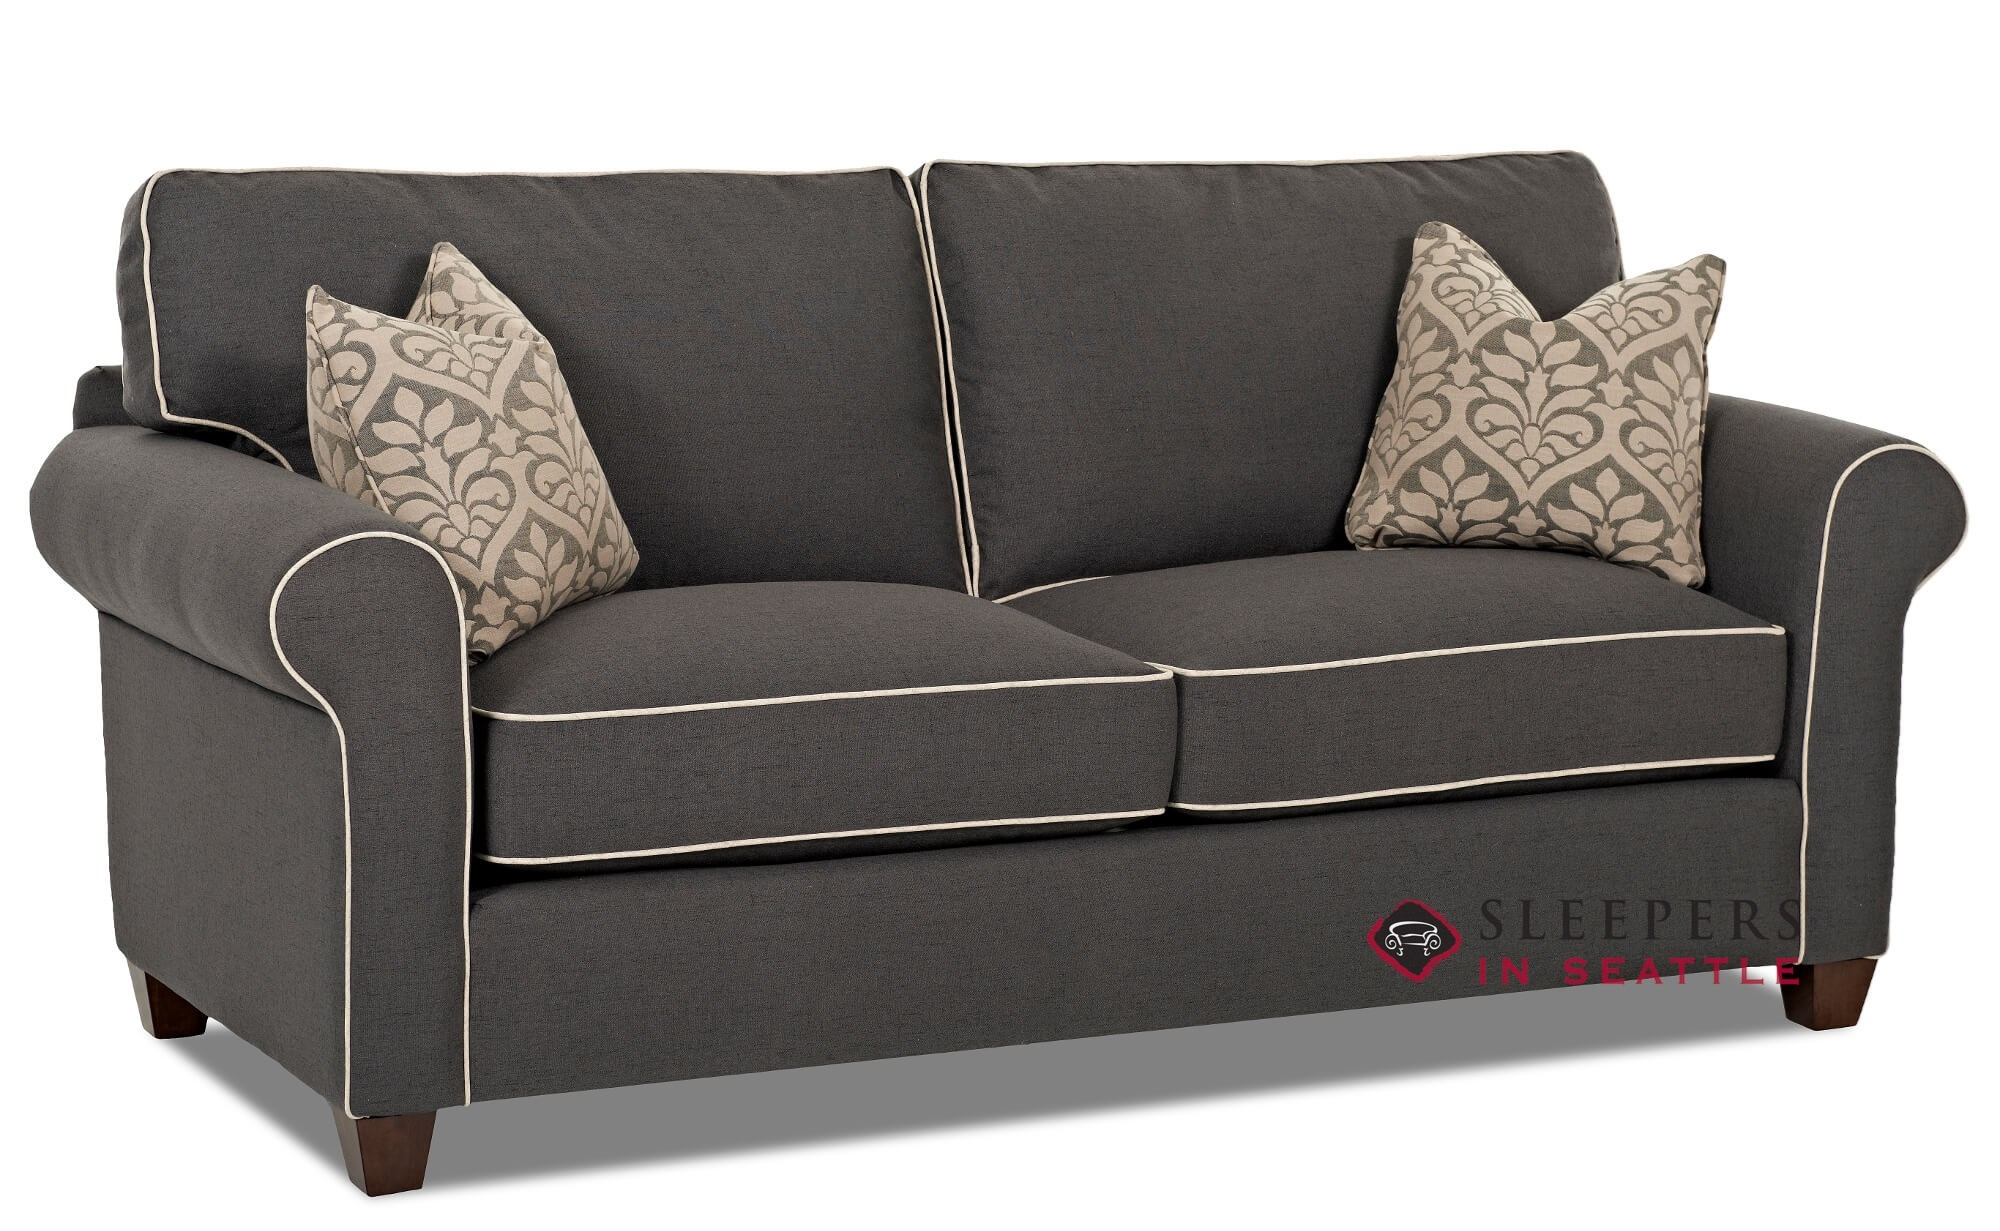 bed and sofa warehouse leeds johnston benchworks customize personalize by savvy full fabric